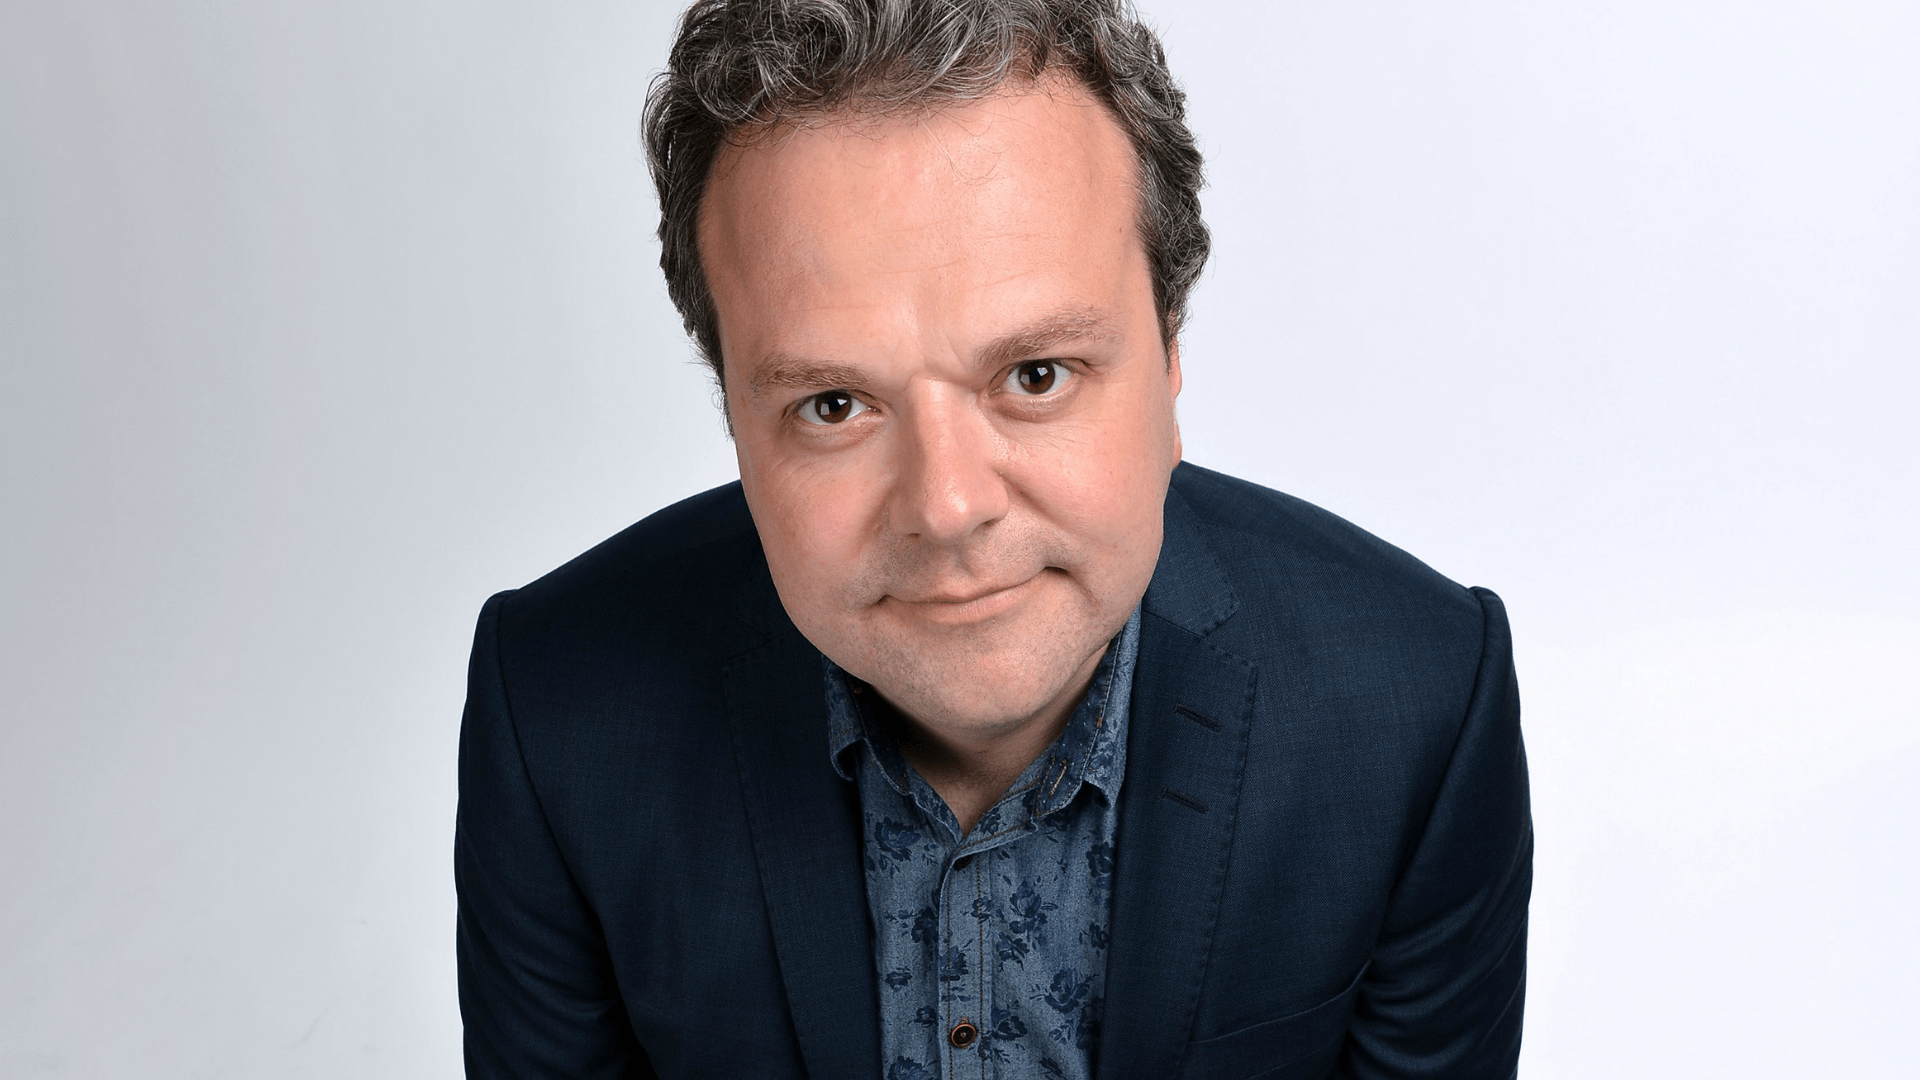 Live At The Apollo star Hal Cruttenden